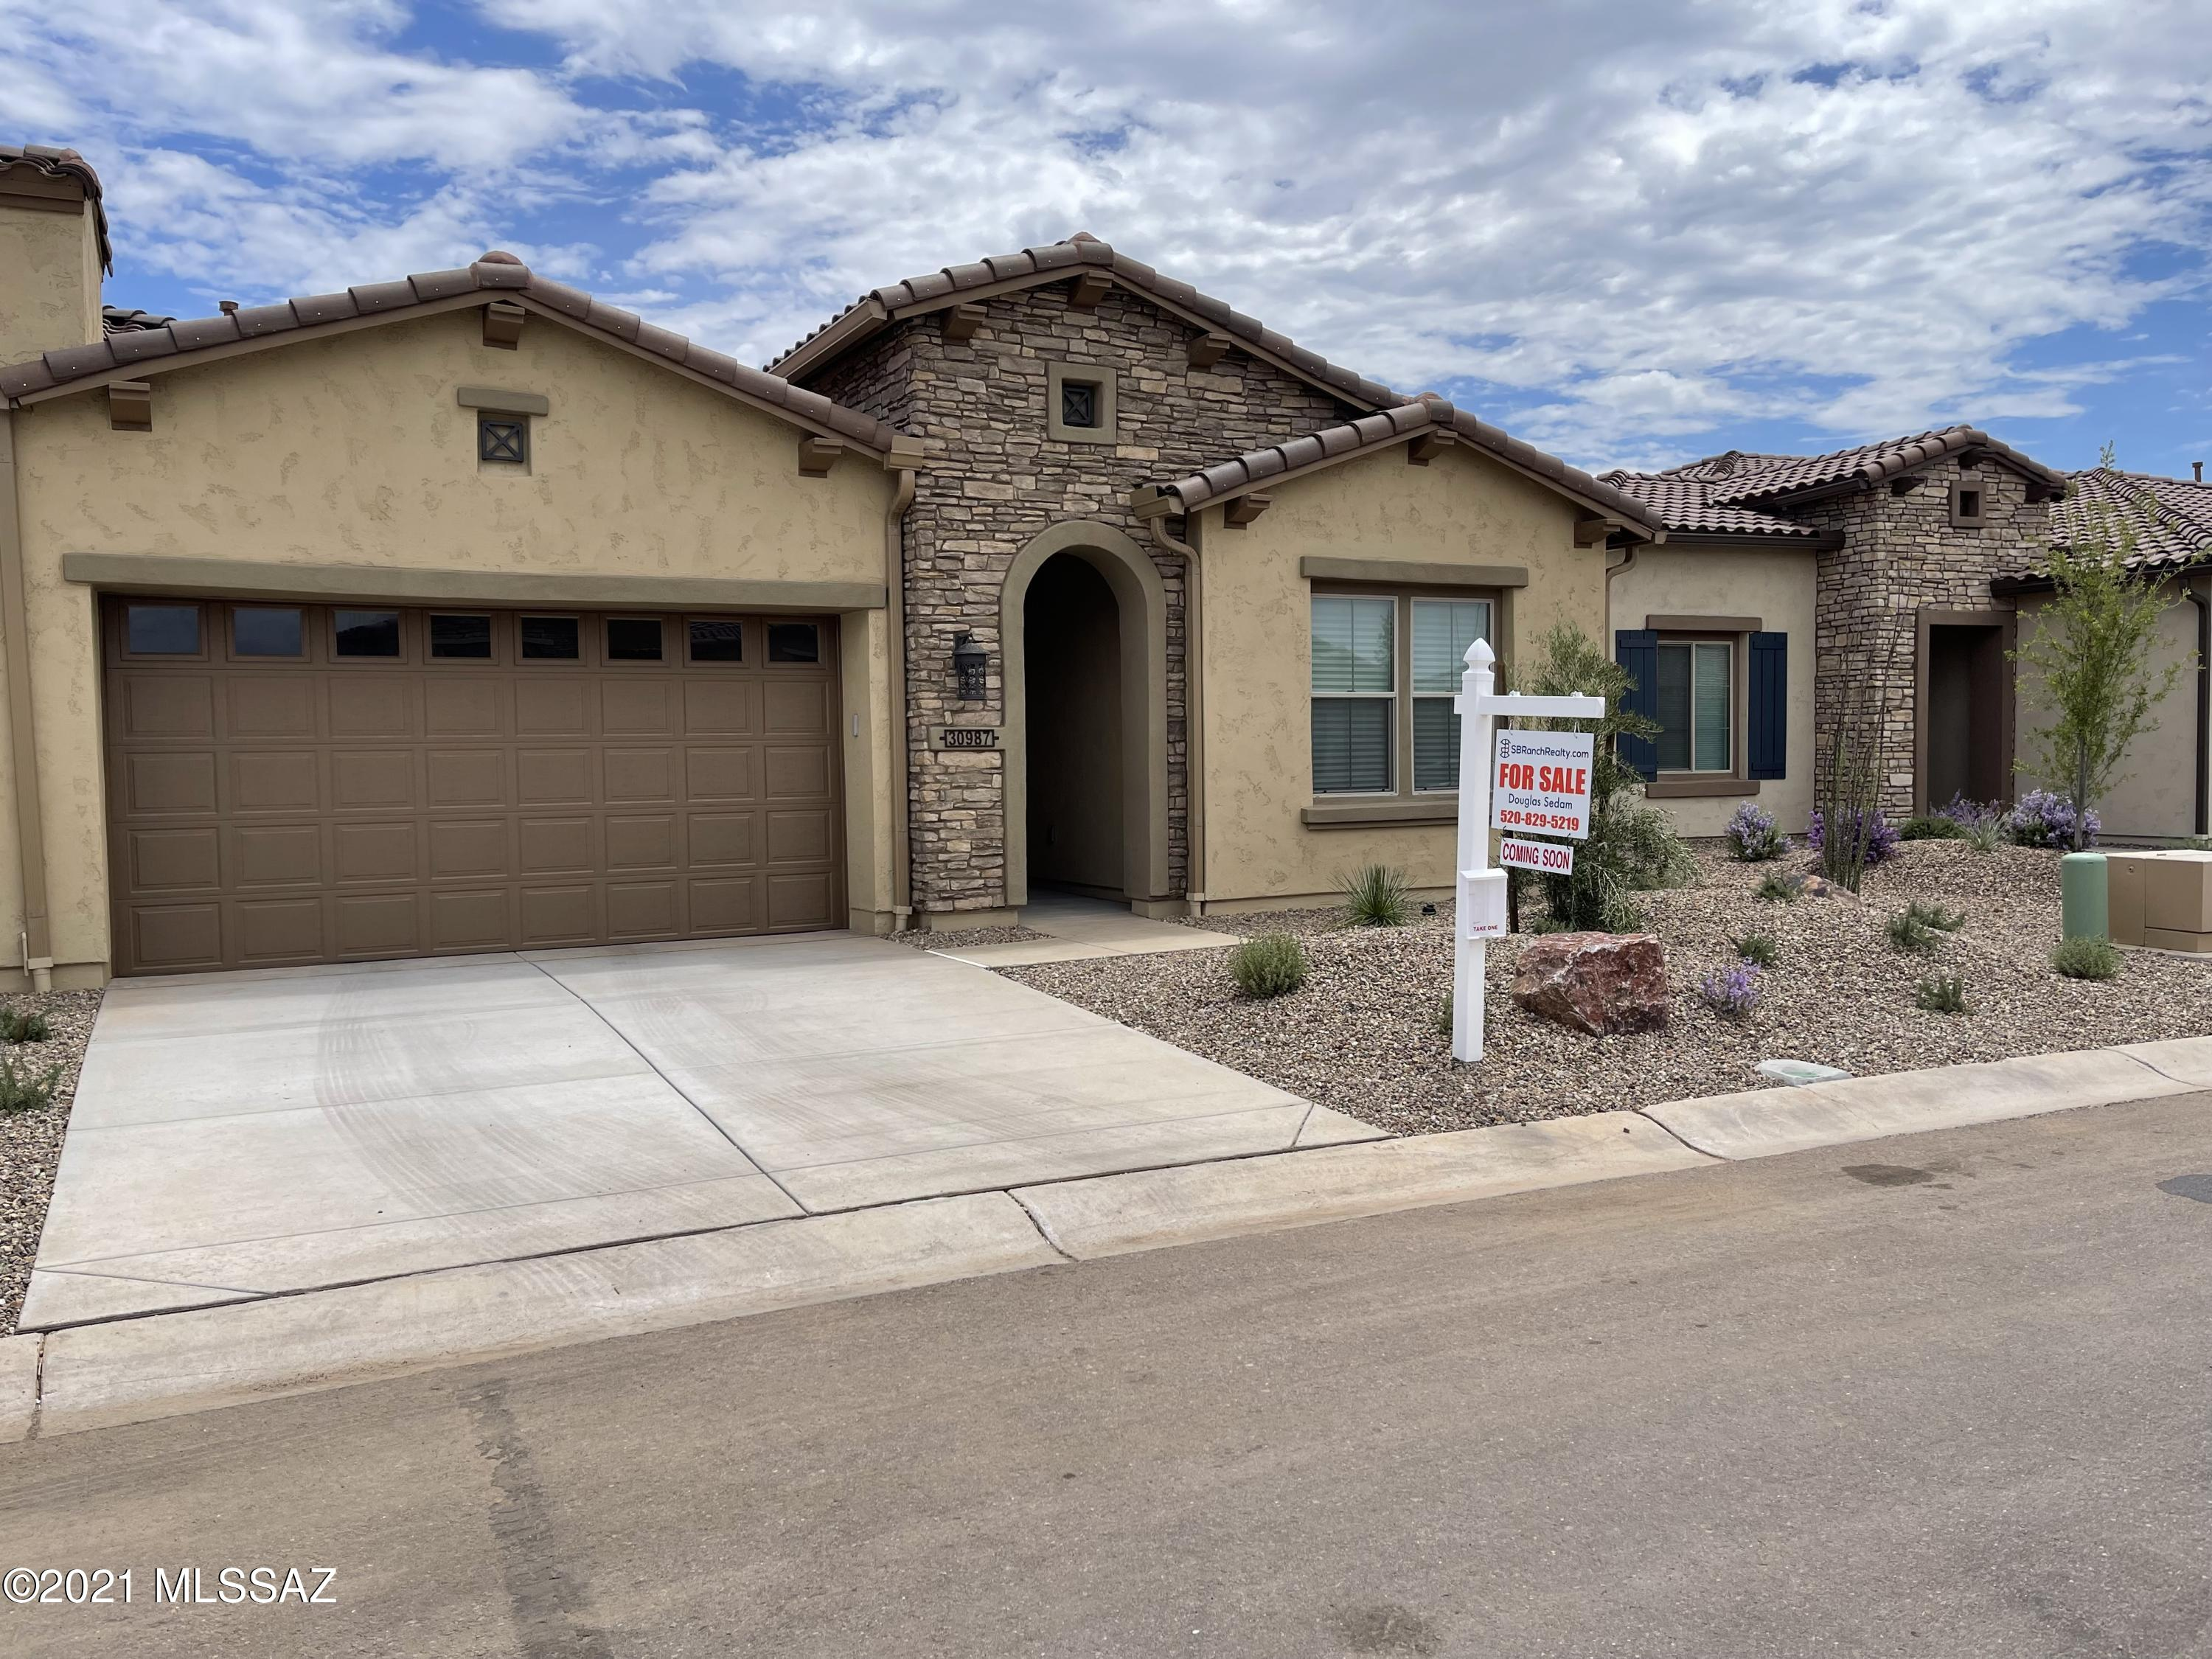 BRAND NEW - NEVER LIVED IN VIVA - VILLA IN  SADDLEBROOKE RANCH. A gorgeous 1655 sq. ft.  2-bedroom and 2-bathroom townhome, w/Great Room, Spacious Den, Grand Kitchen Island, Walk-In Pantry, Media Alcove in Great Room, Master Bedroom w/En Suite Bathroom, Walk-in Closet, 42 X 60 Shower w/built in seat, Separate Laundry Room, 274 sq. ft. covered patio, Depp 2-Car Garage, 9' and 10'' ceilings, and Enclosed Private Courtyard that is approximately 214 sq. ft.   Seller spent ~$31,000 in upgrades and then installed ceiling fans, pendant lights  over Kitchen Island, Cabinet ''pulls'' on all cabinets, and Bathroom Accessories. Why wait 13-14 month's for a new Villa when you can be in this NEW home in less than 30-days!